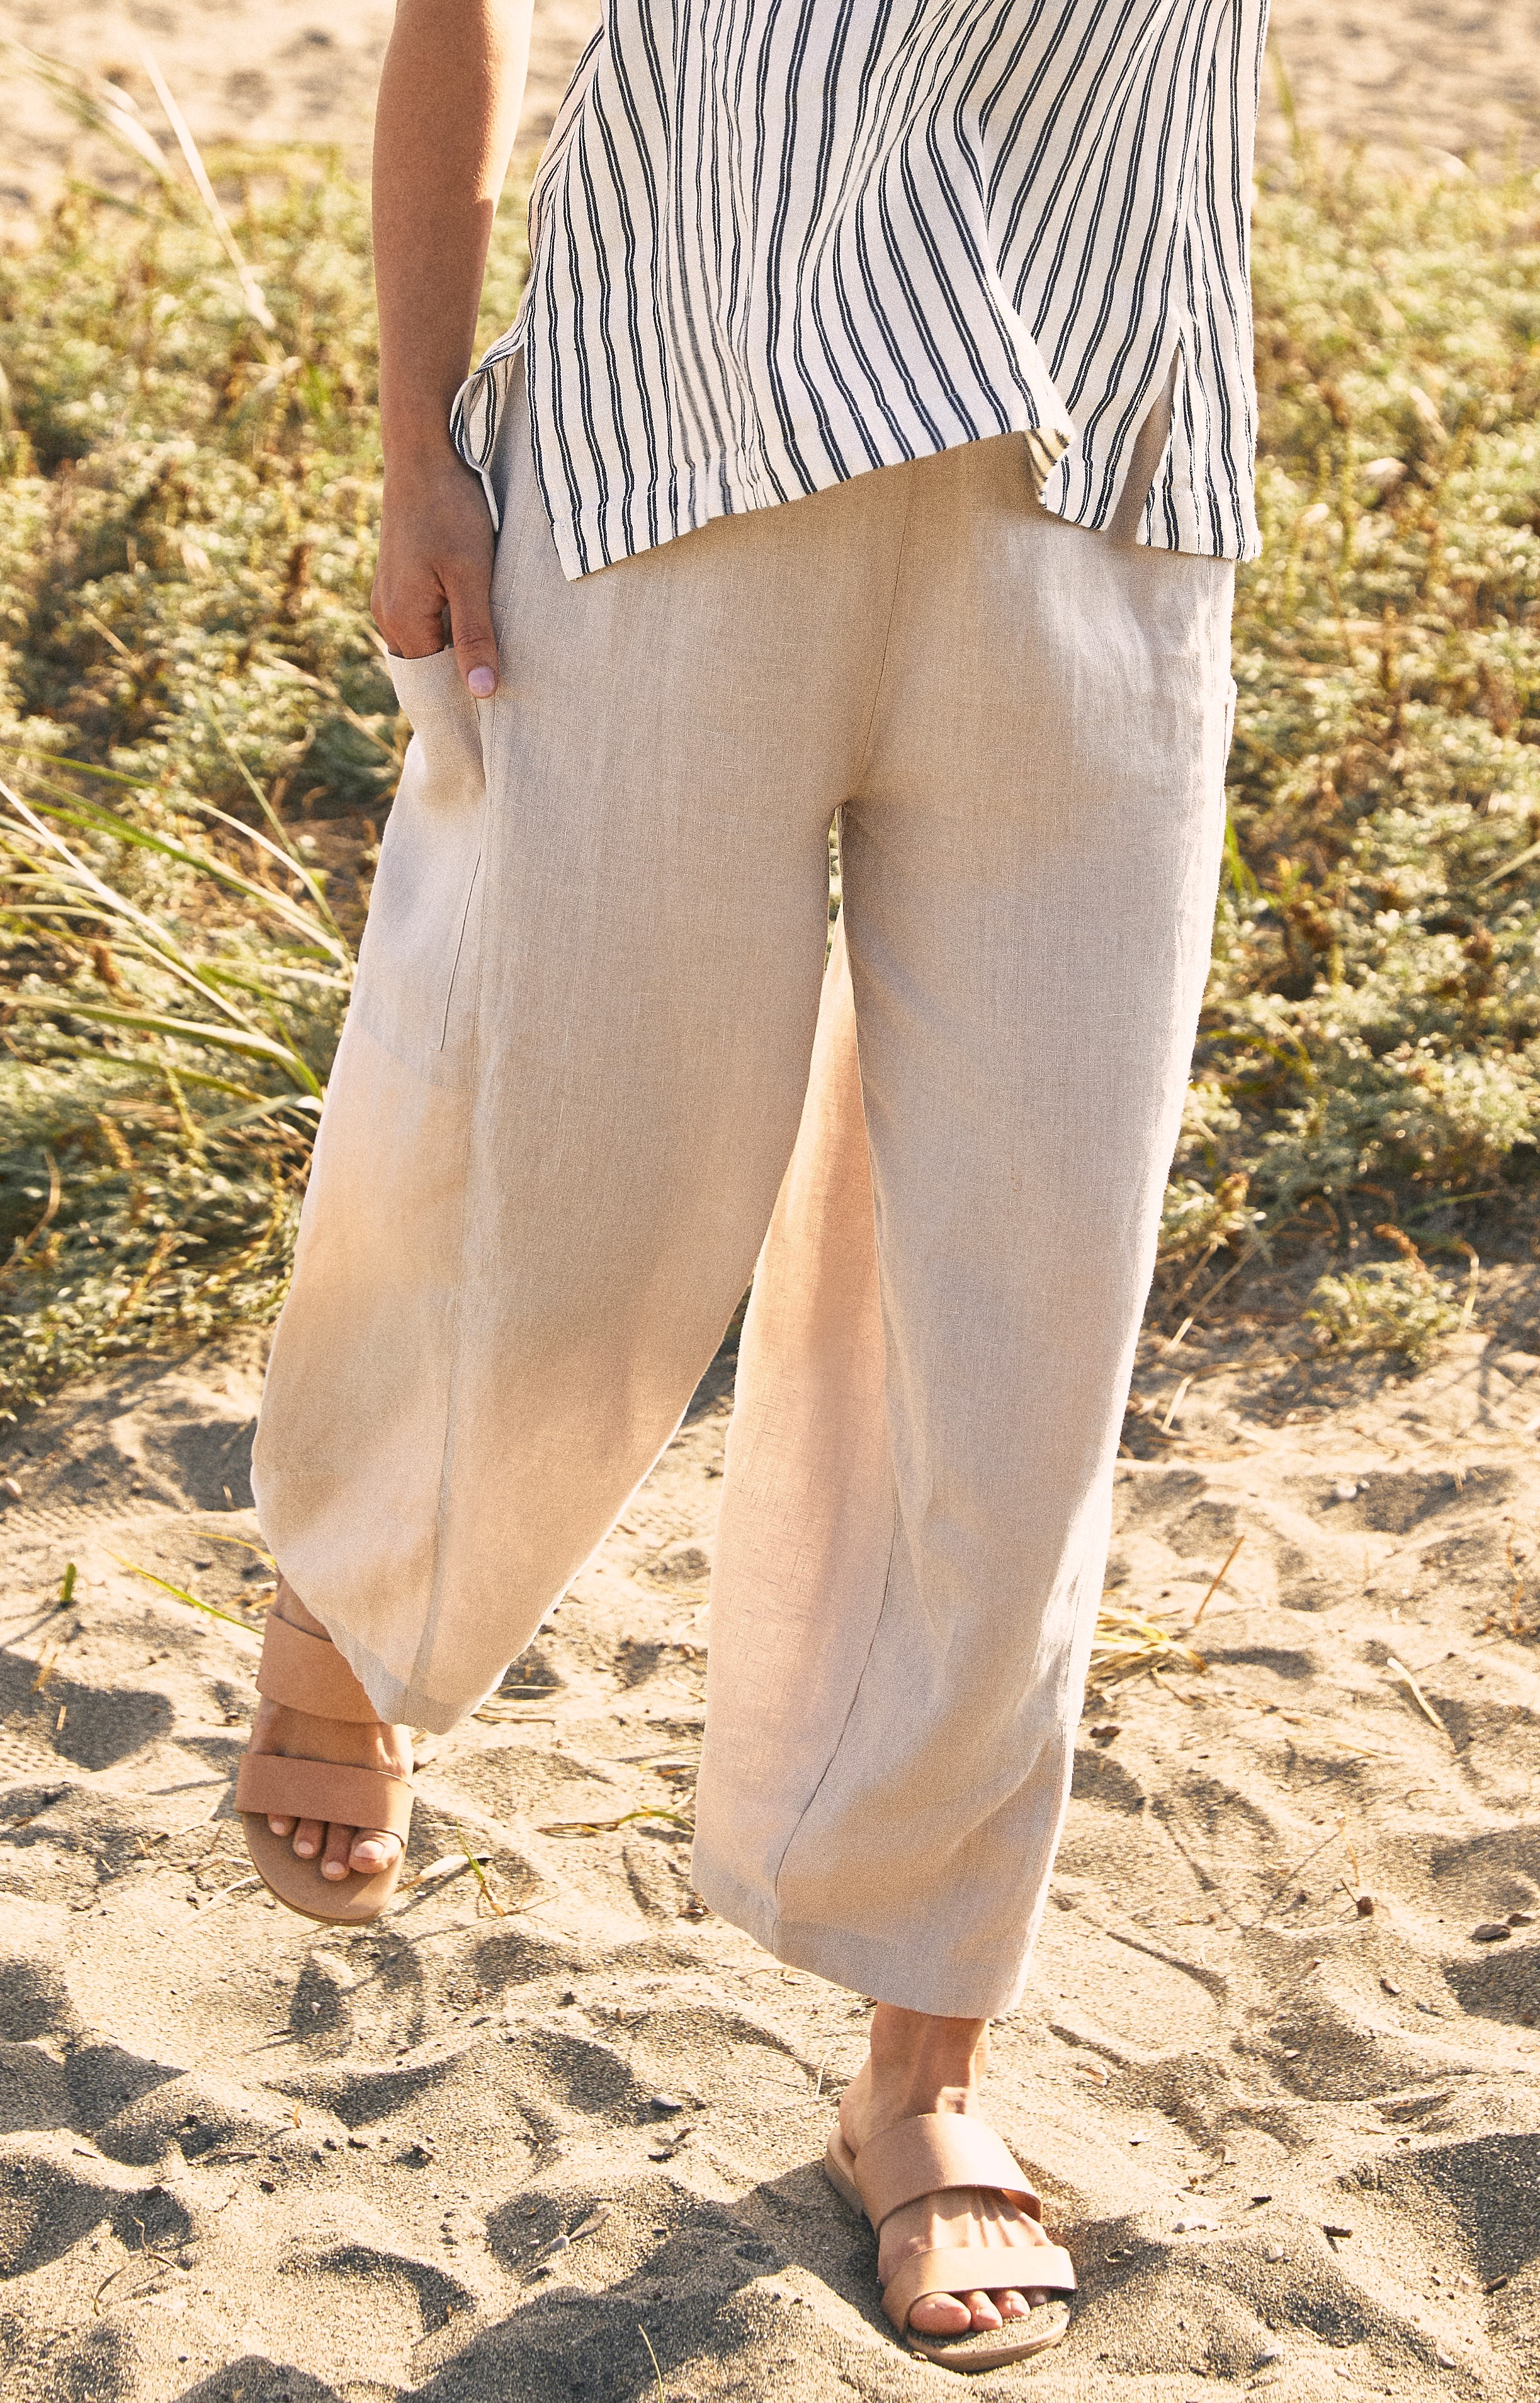 Sympli 100% Linen Lantern Pants Style LW2701, 2 Colors Available